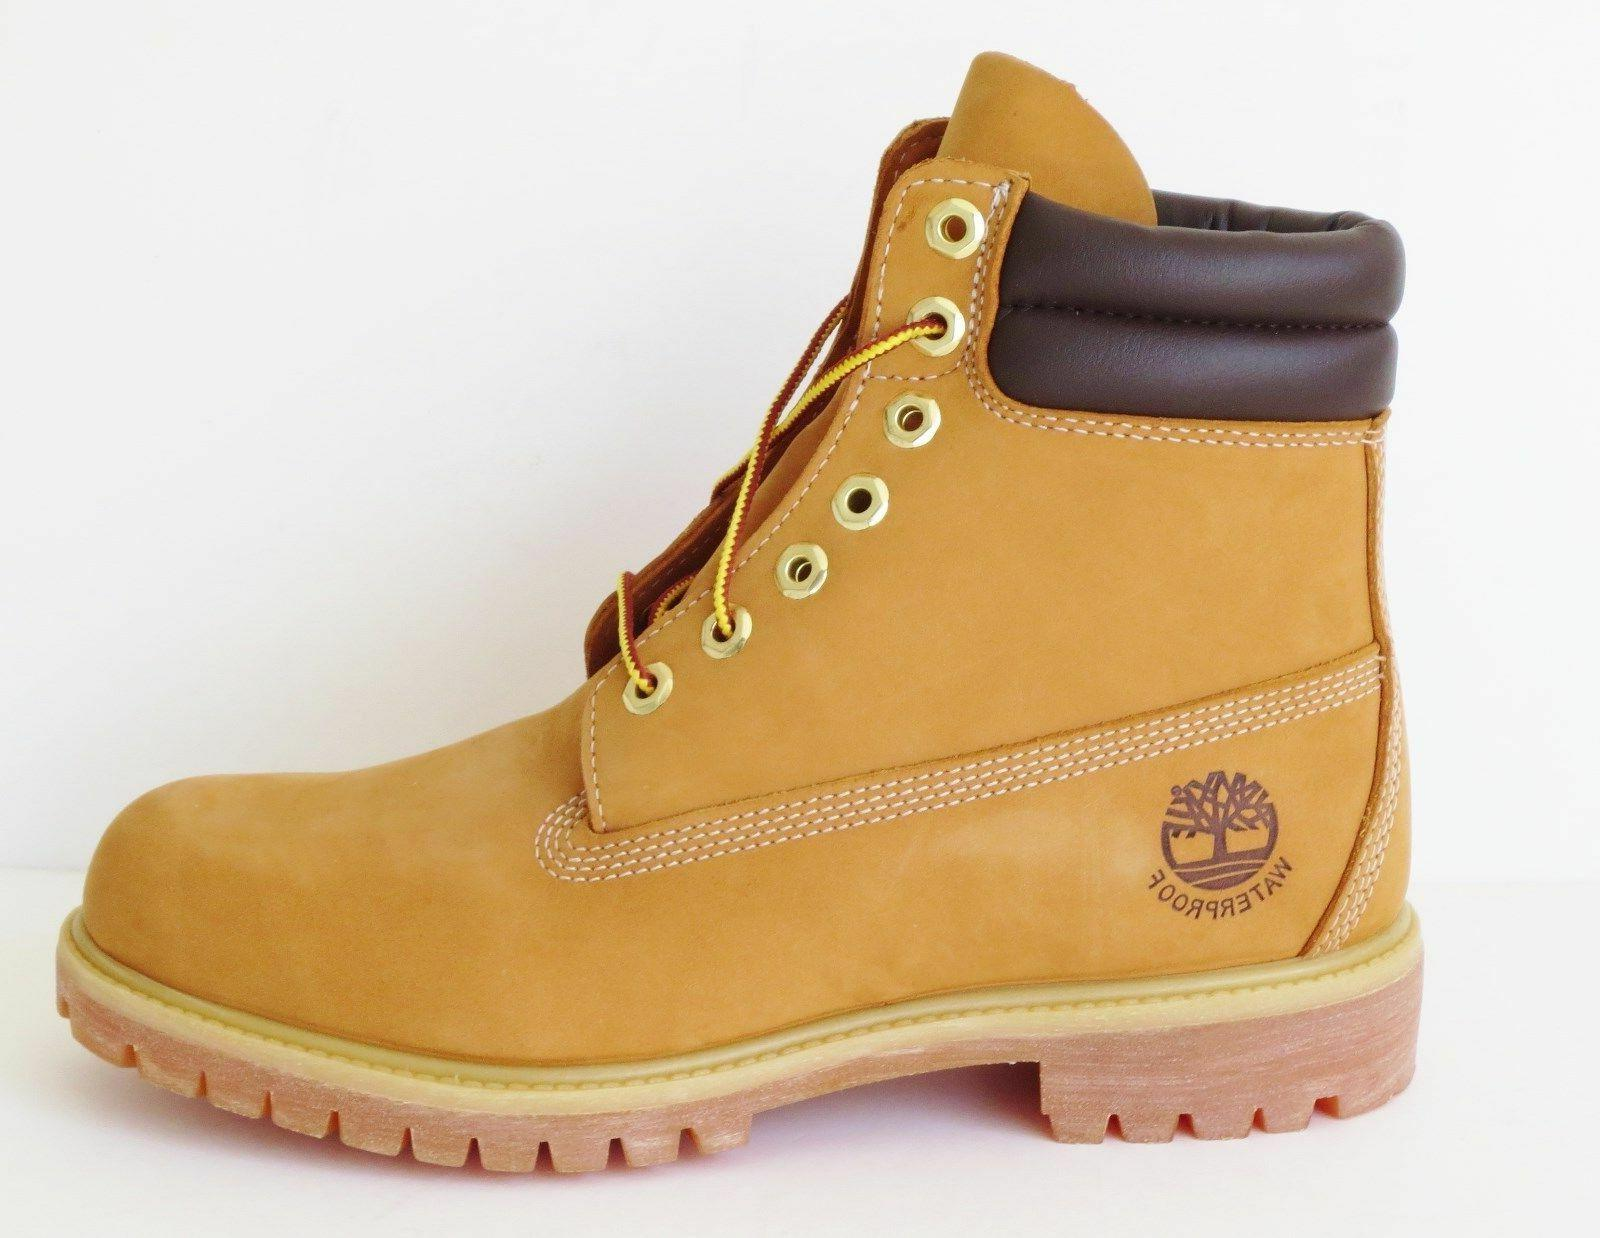 Timberland Mens 6 Inch Double Sole Premium Leather  Work Boo